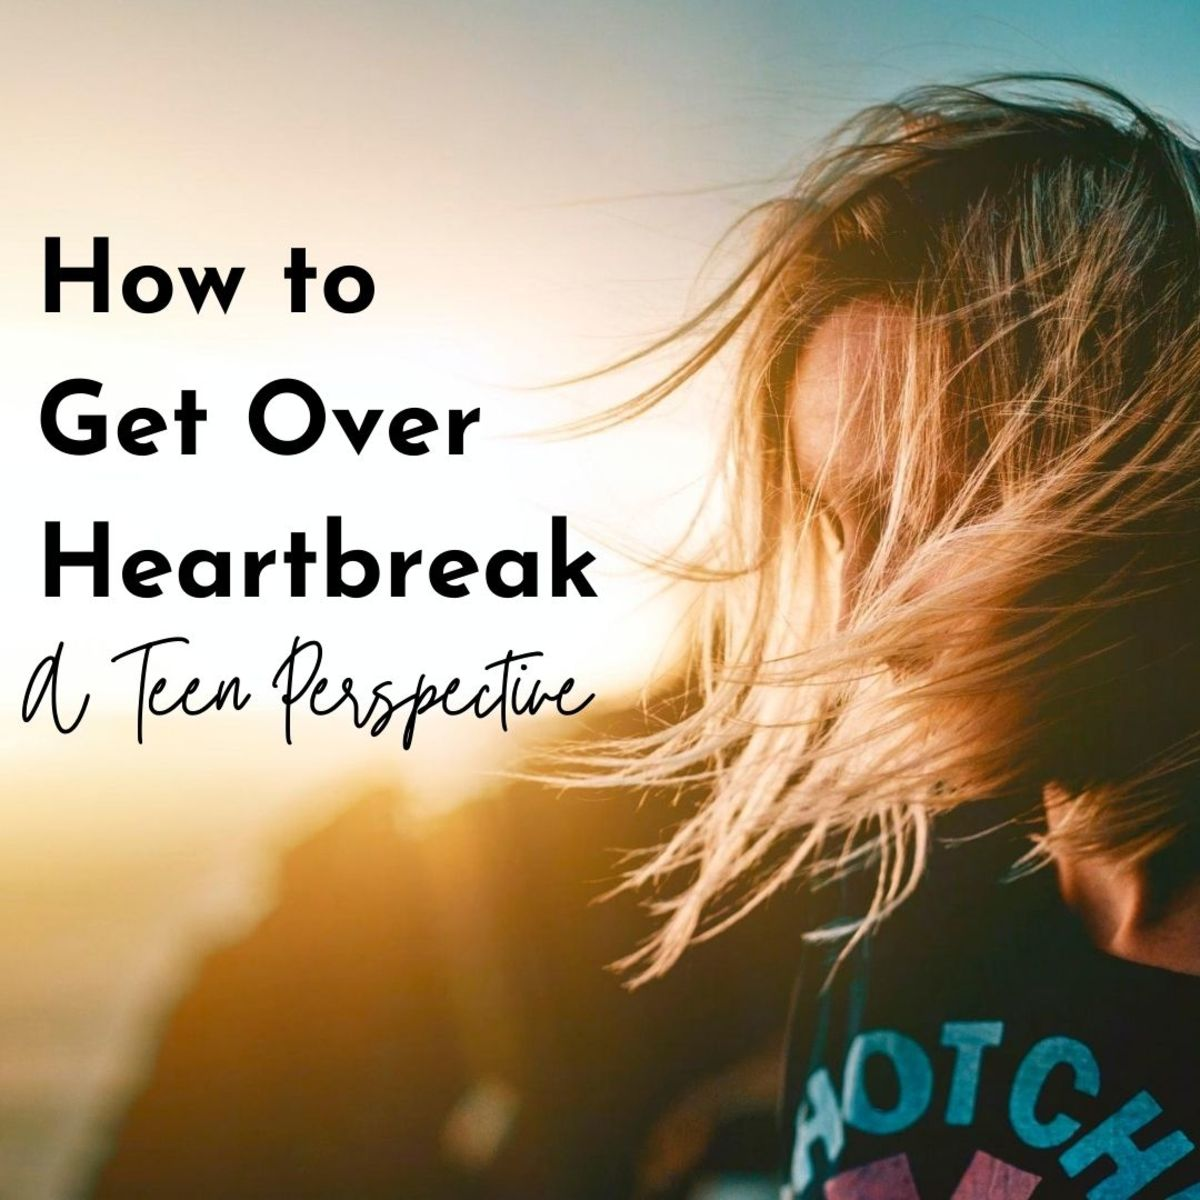 Heartbreak can feel like the end of the world. Here's how you can start learning to live and love again.